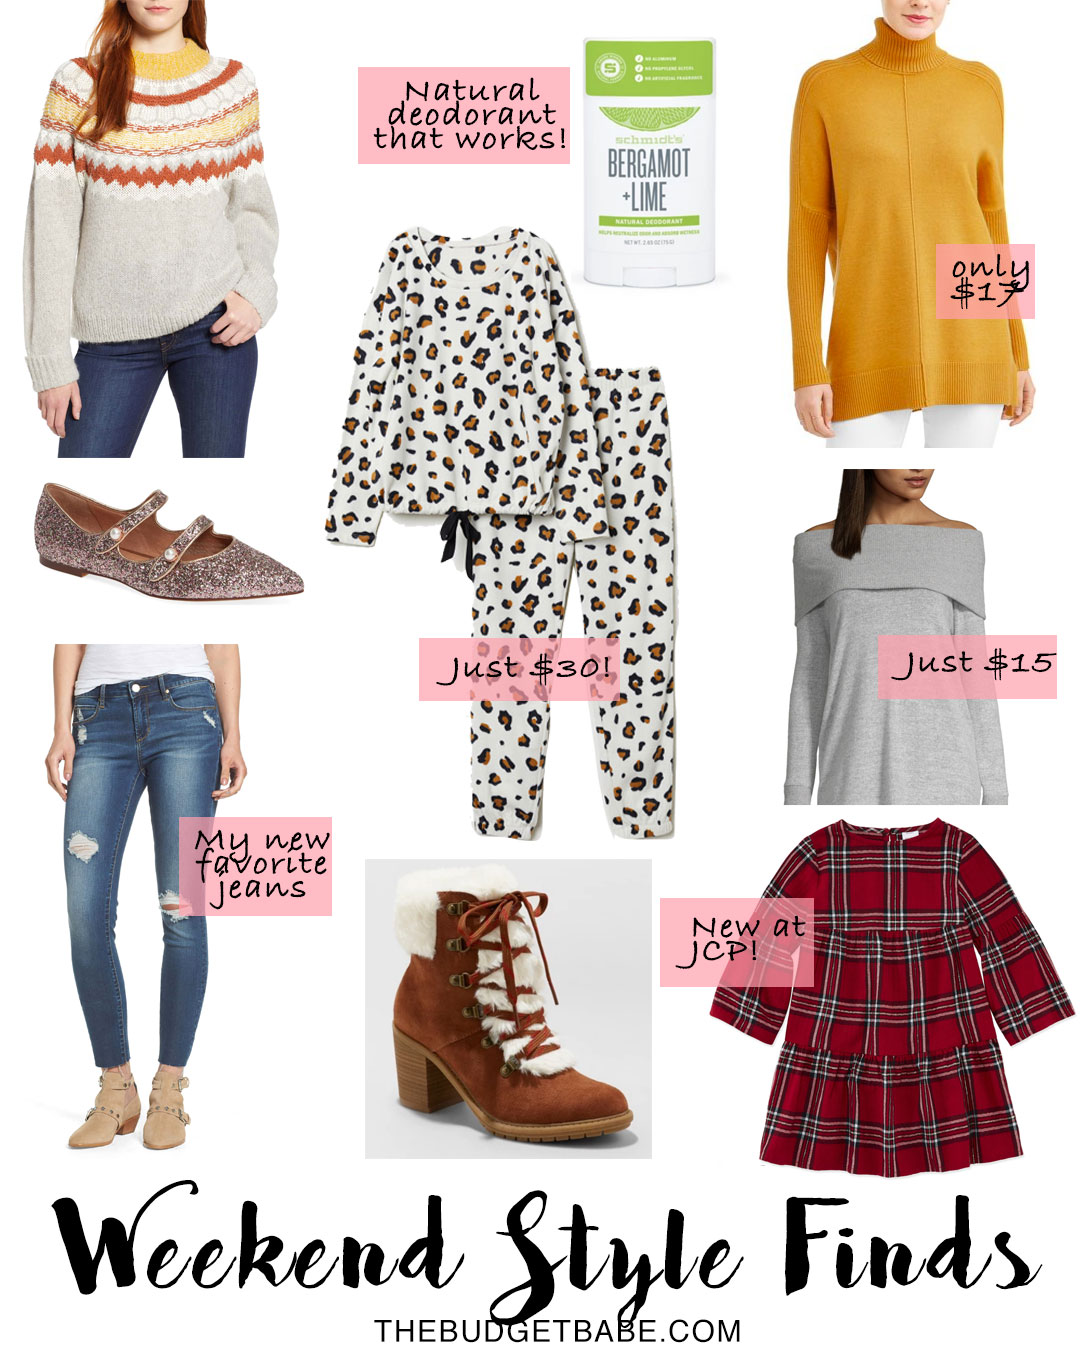 This blogger finds the cutest fashions under $40!